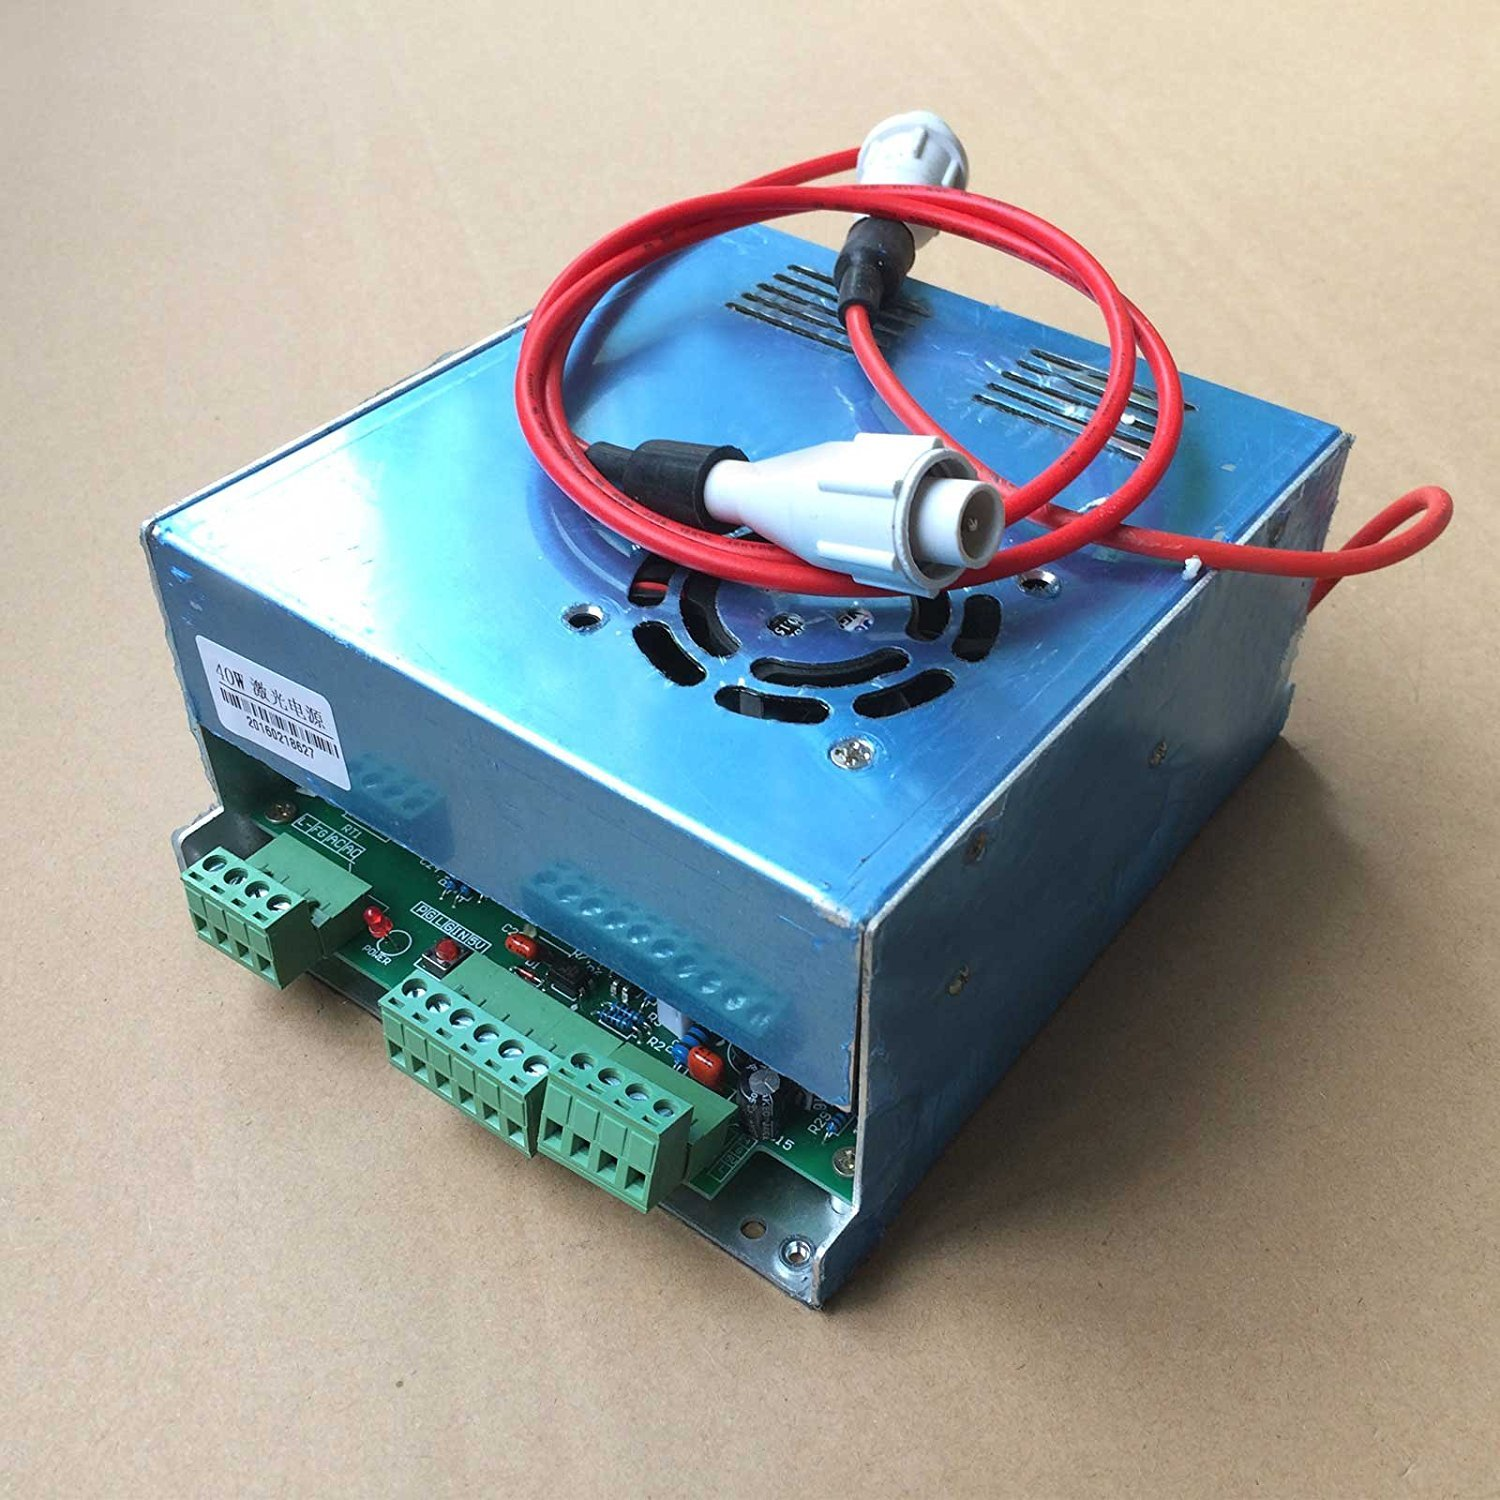 40w Power Supply Co2 Laser Engraver Cutter 110v 220v Hv K40 Wiring Diagram Connector Green Port Computers Accessories